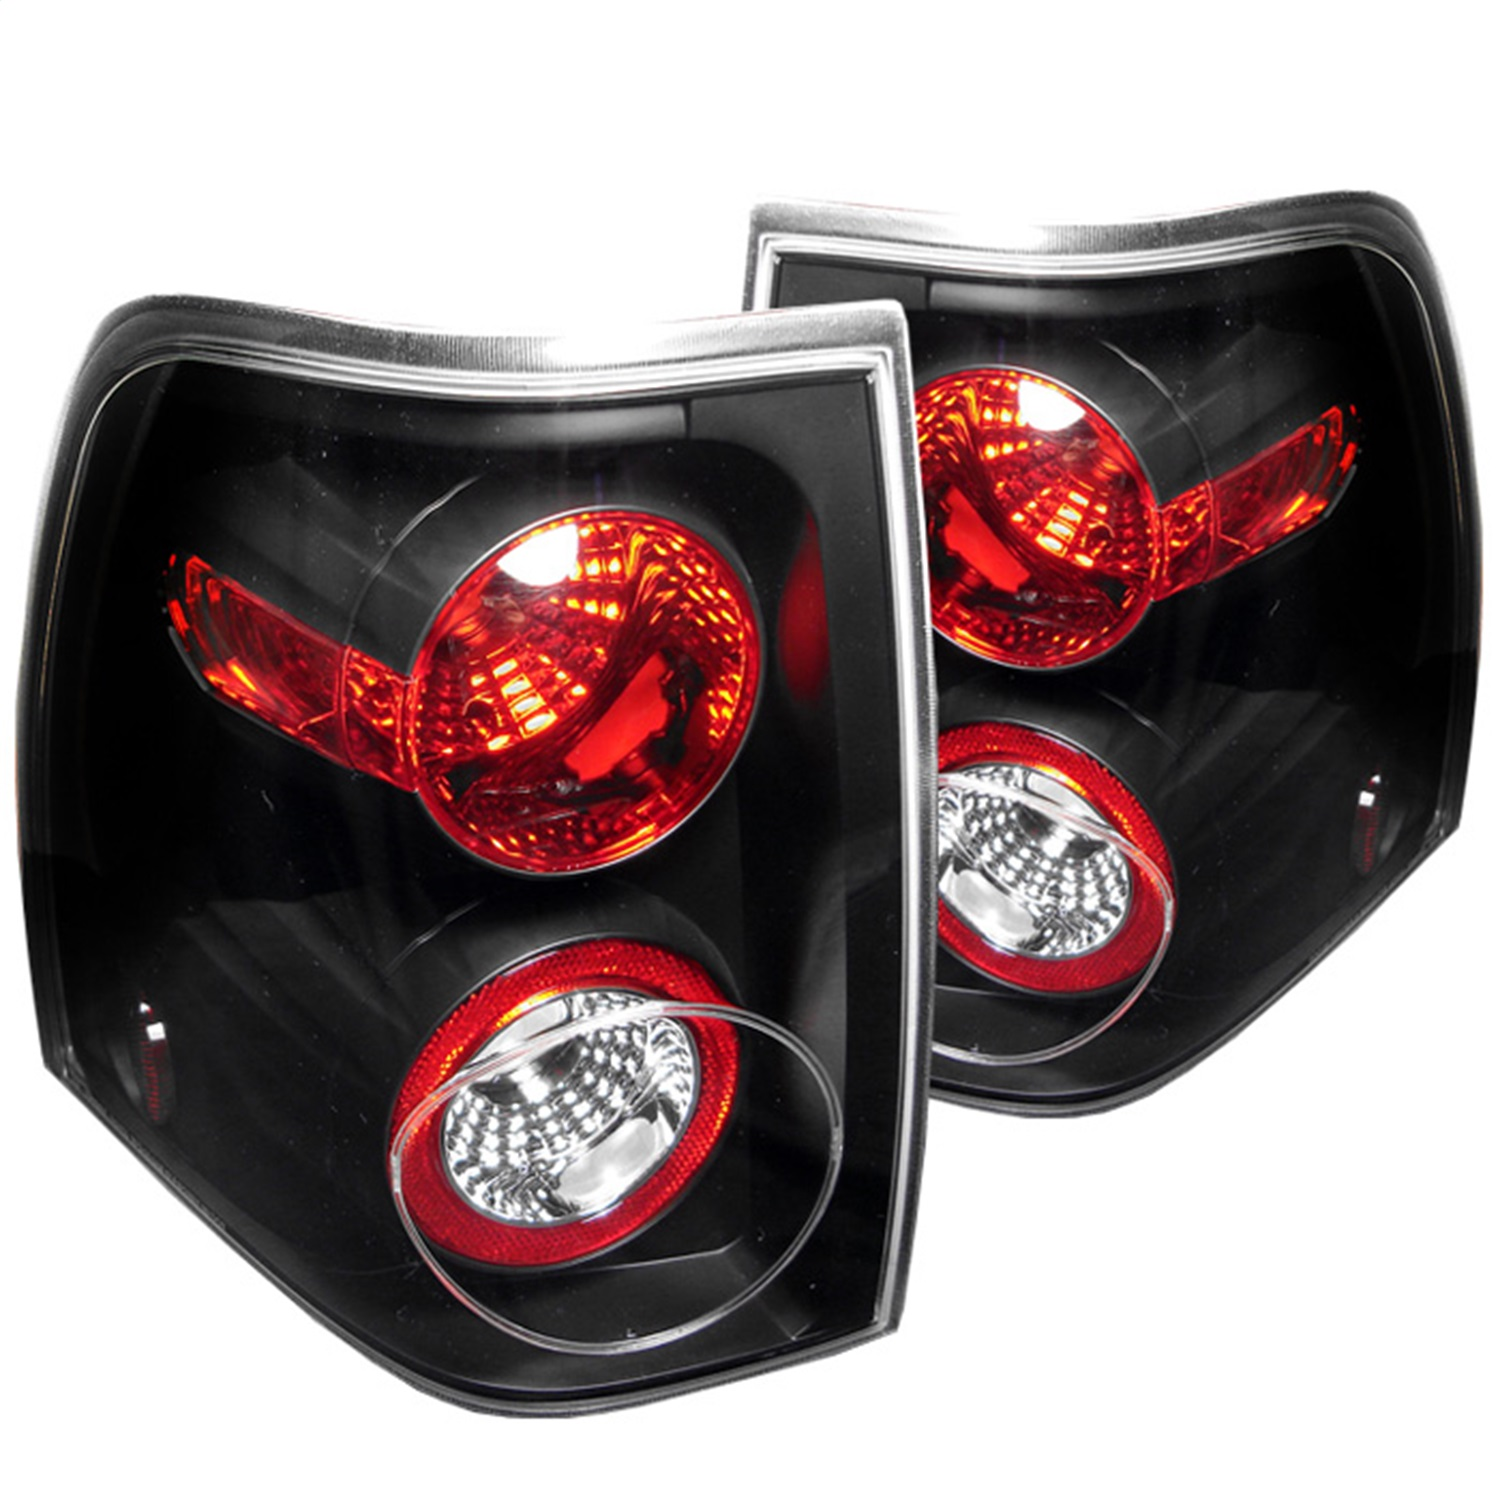 Spyder Auto 5002792 Euro Style Tail Lights Fits 03-06 Expedition